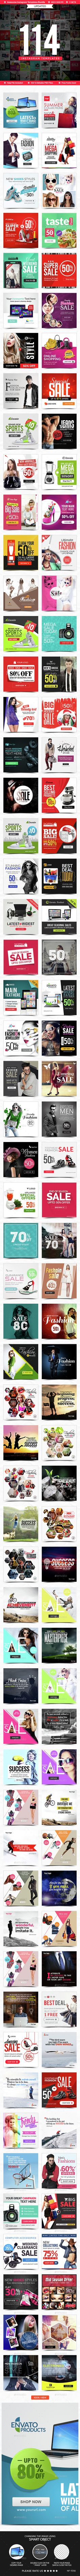 Instagram Templates Bundle - 114 Designs - UPDATED!